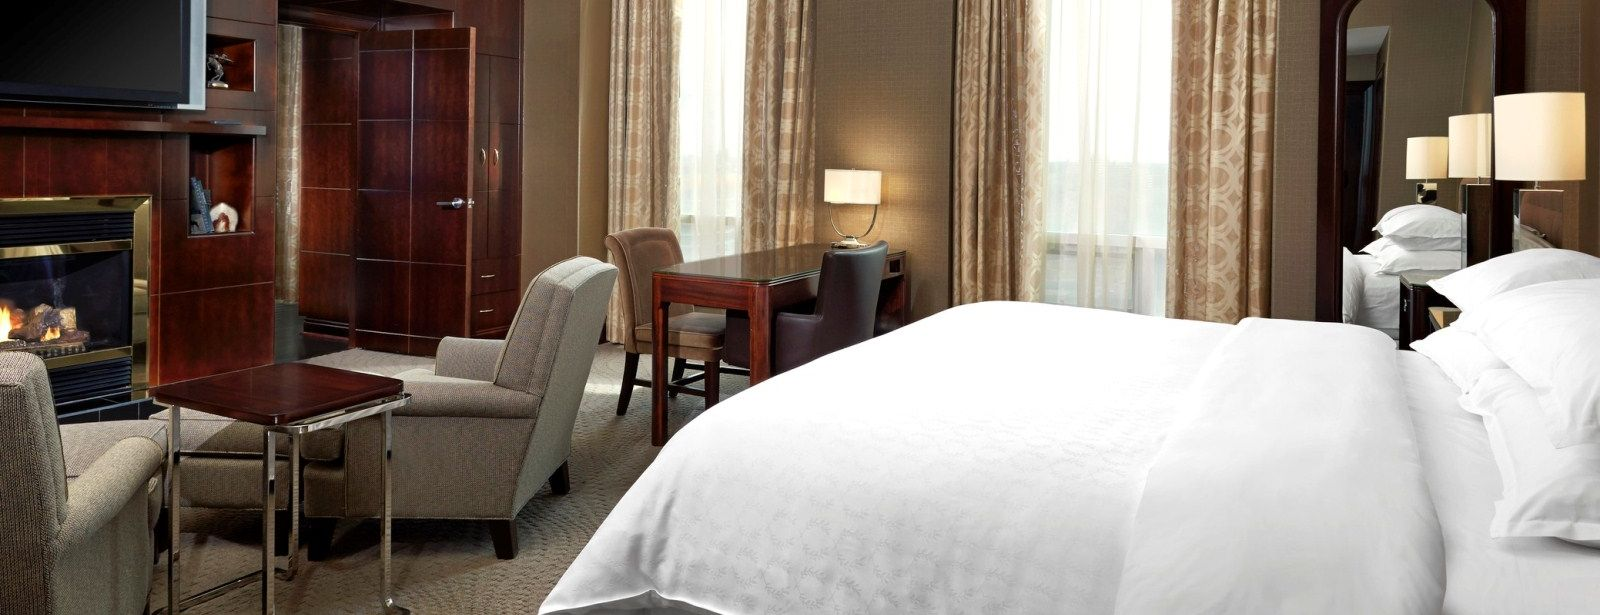 The bedroom of the Sheraton Presidential Suite (SheratonSuites)